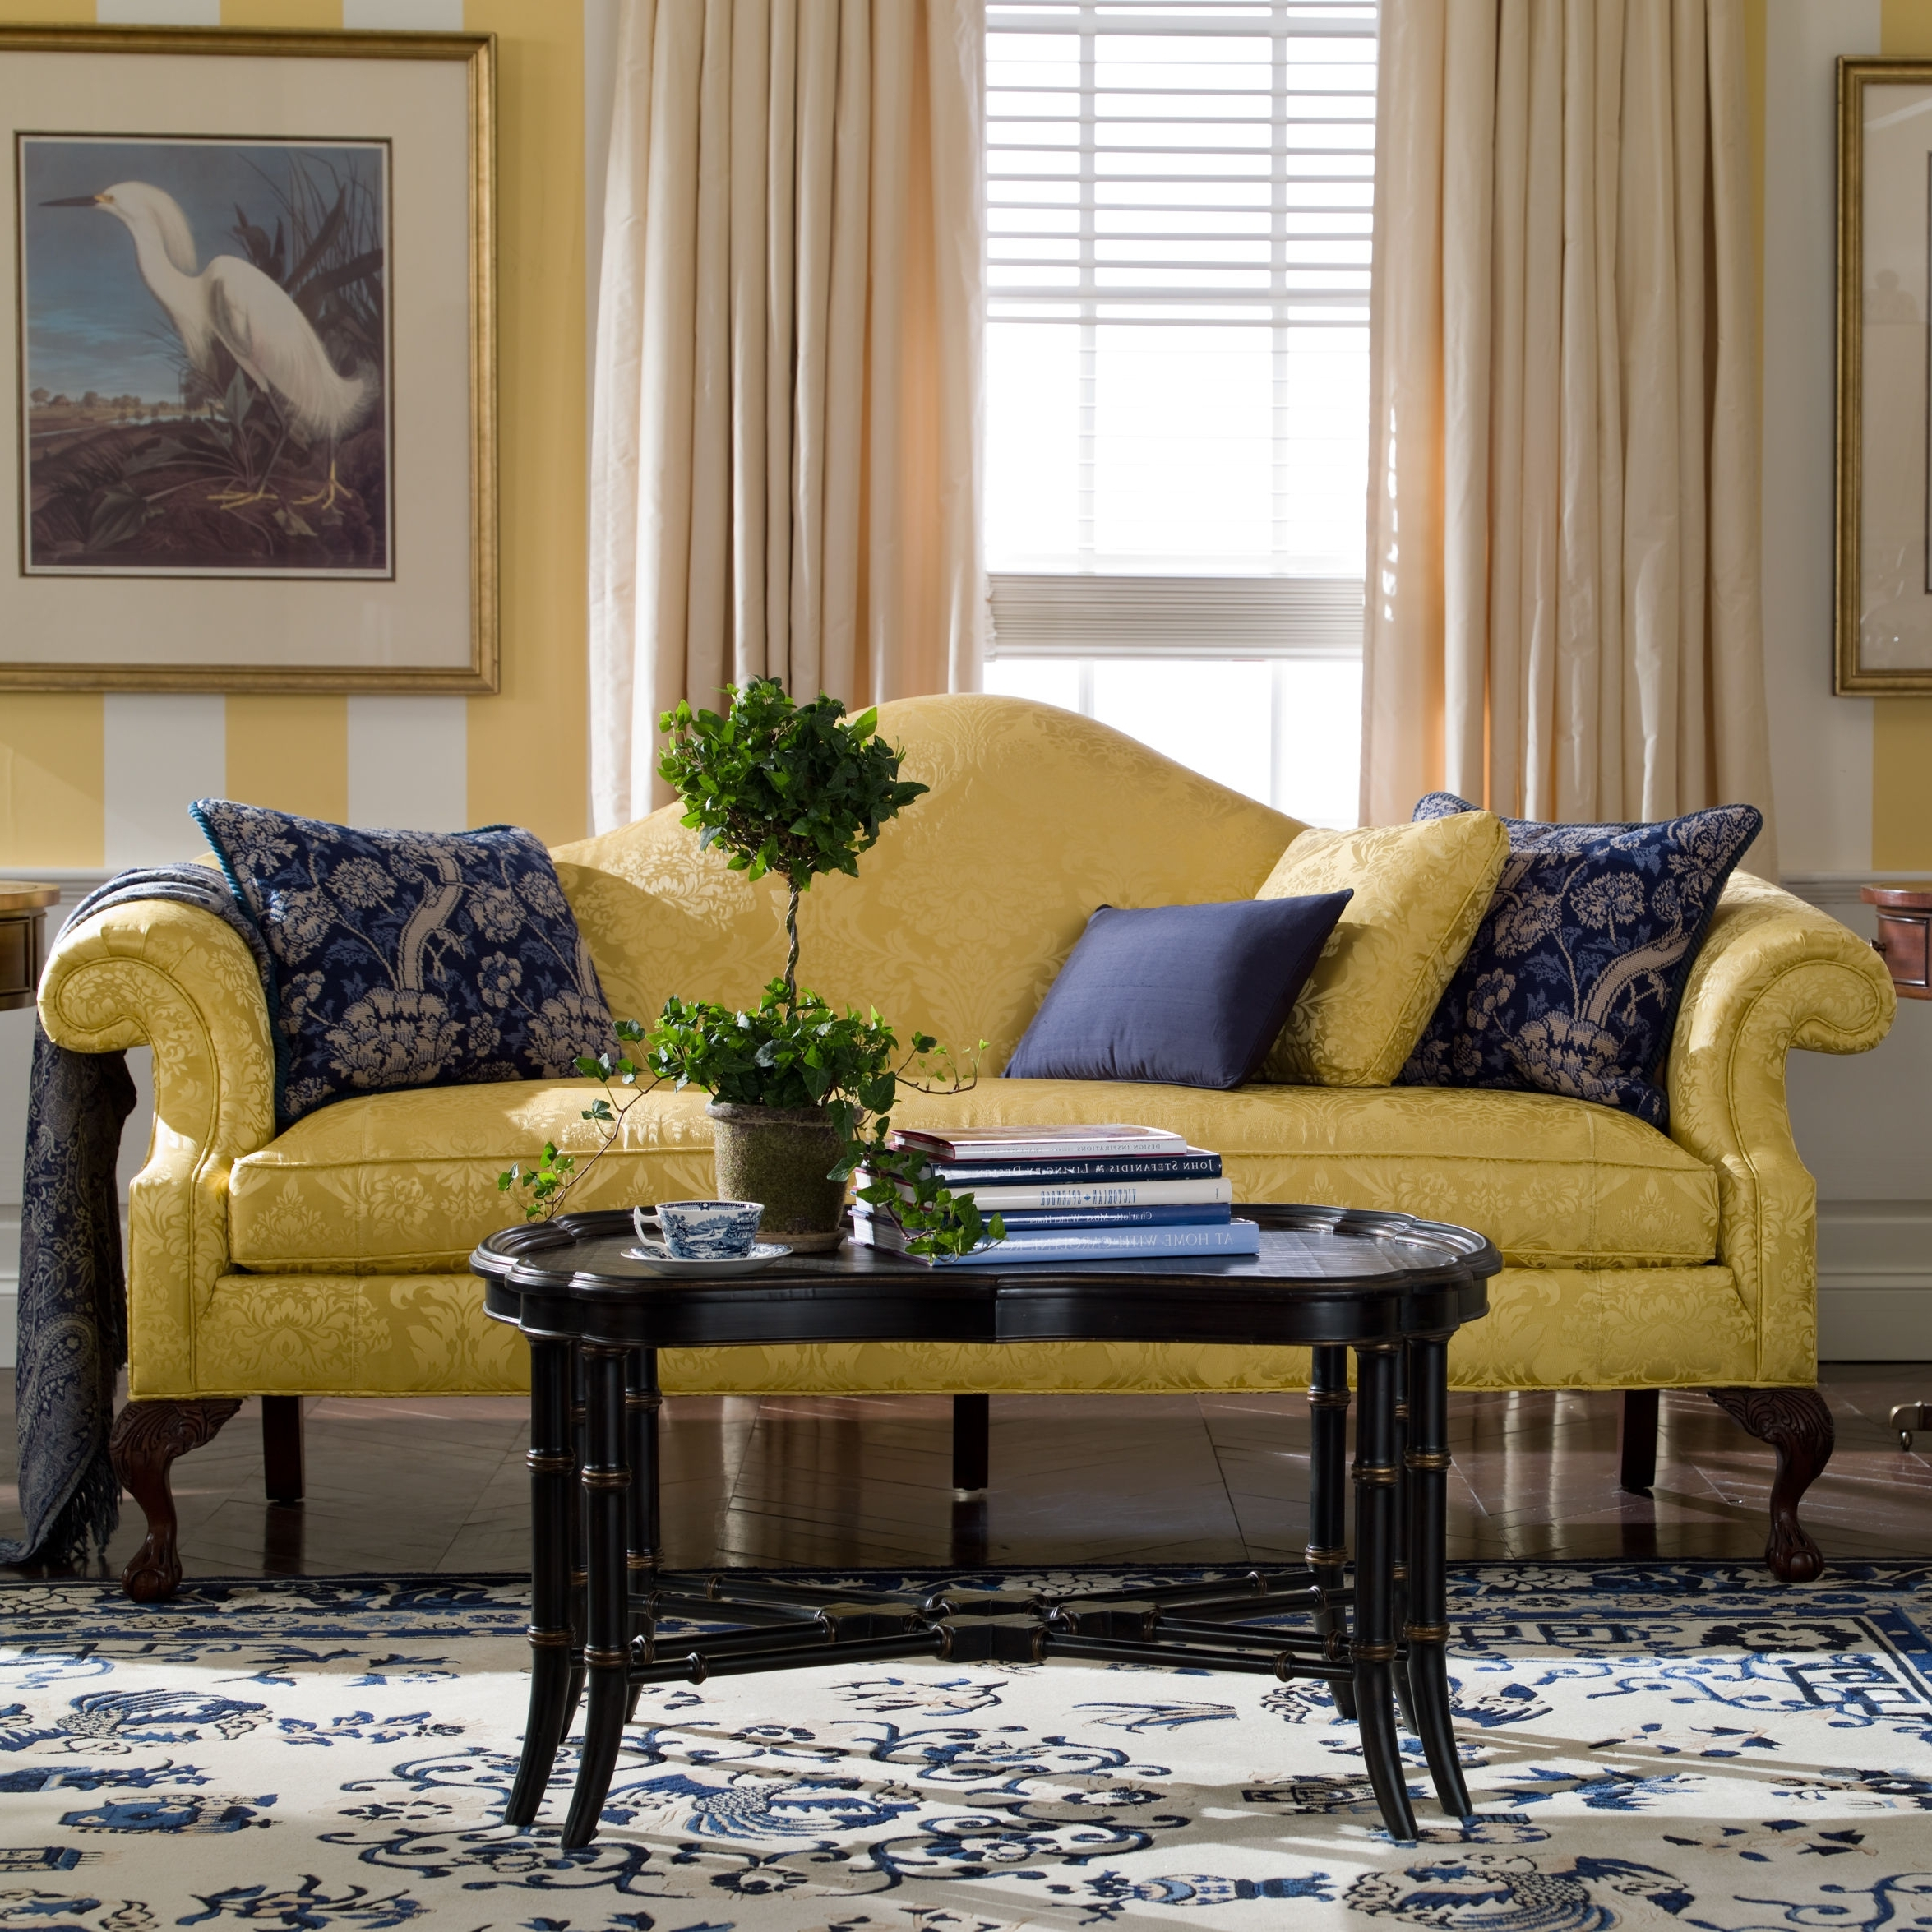 Most Current Ethan Allen Sofas And Chairs Pertaining To Hepburn Sofa – Ethan Allen (With Different Fabric) (View 8 of 15)